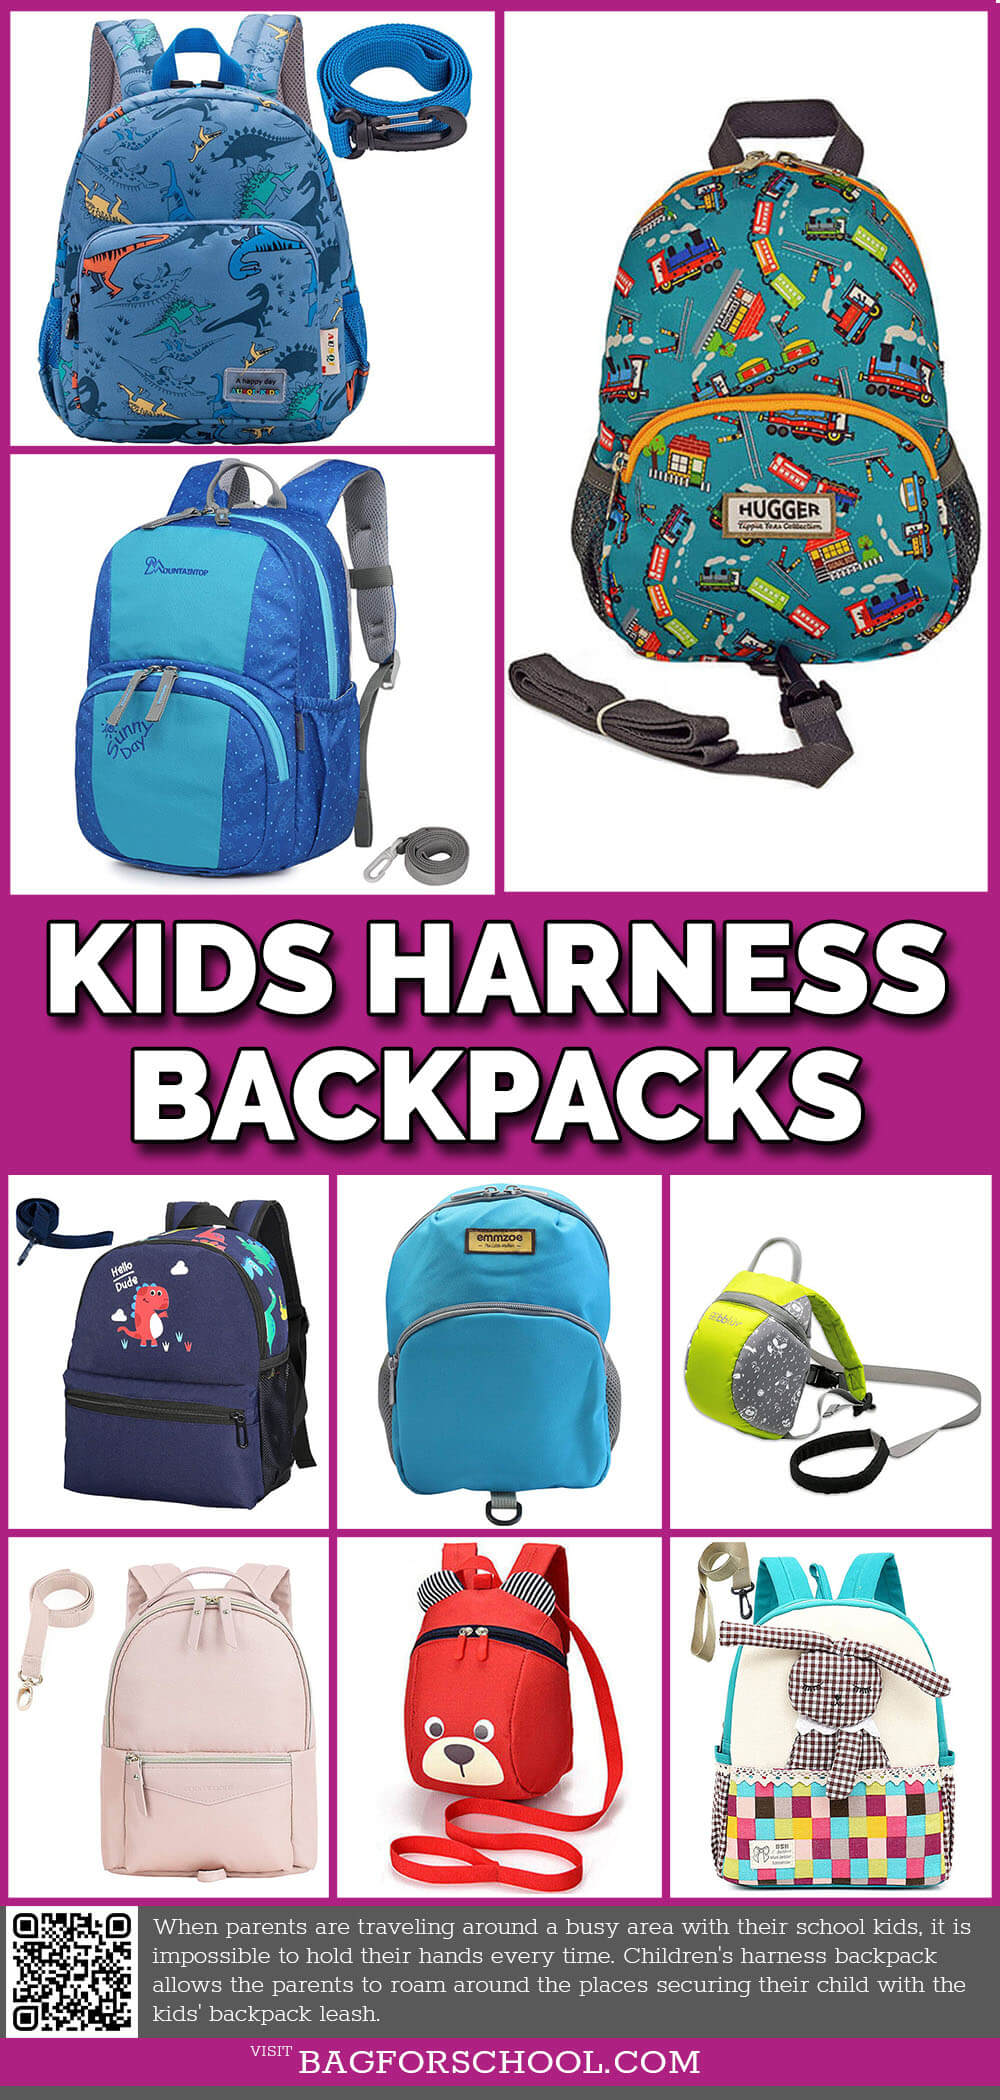 School Kids Harness Backpacks